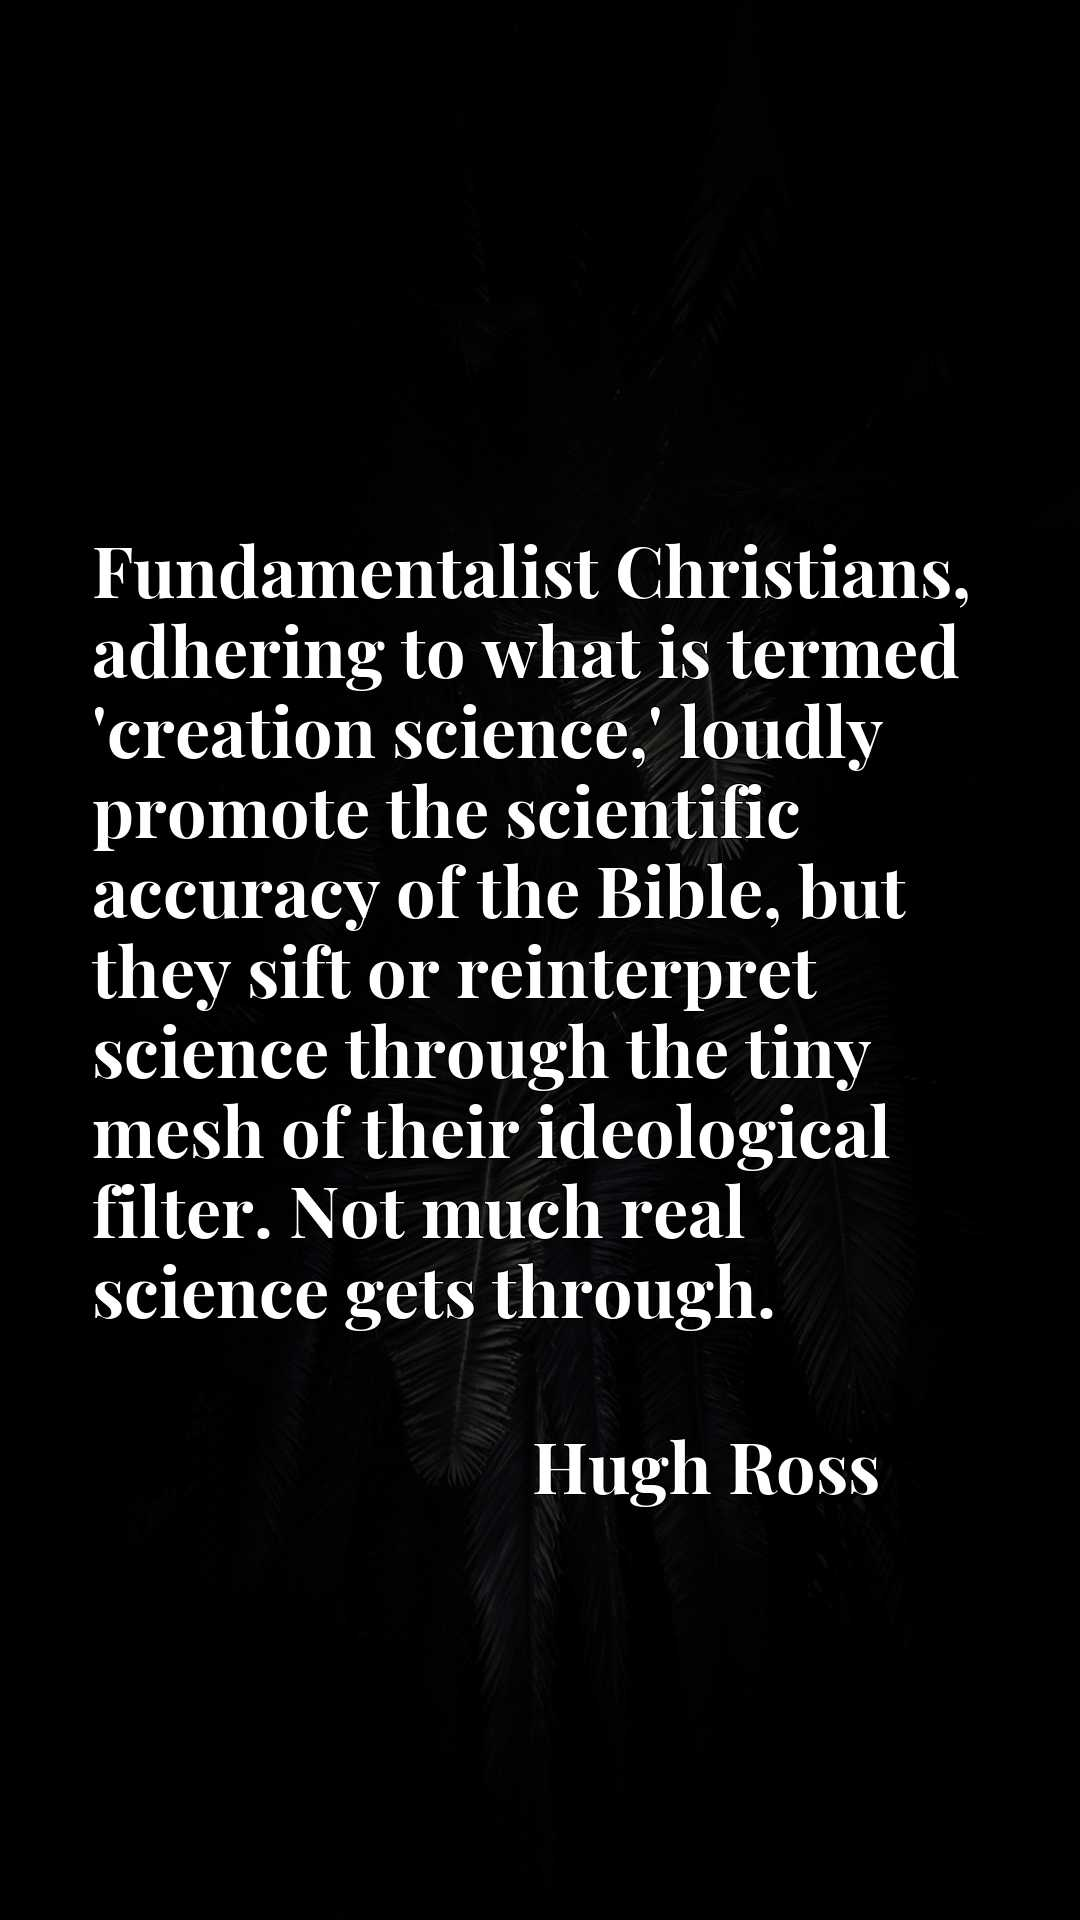 Fundamentalist Christians, adhering to what is termed 'creation science,' loudly promote the scientific accuracy of the Bible, but they sift or reinterpret science through the tiny mesh of their ideological filter. Not much real science gets through.